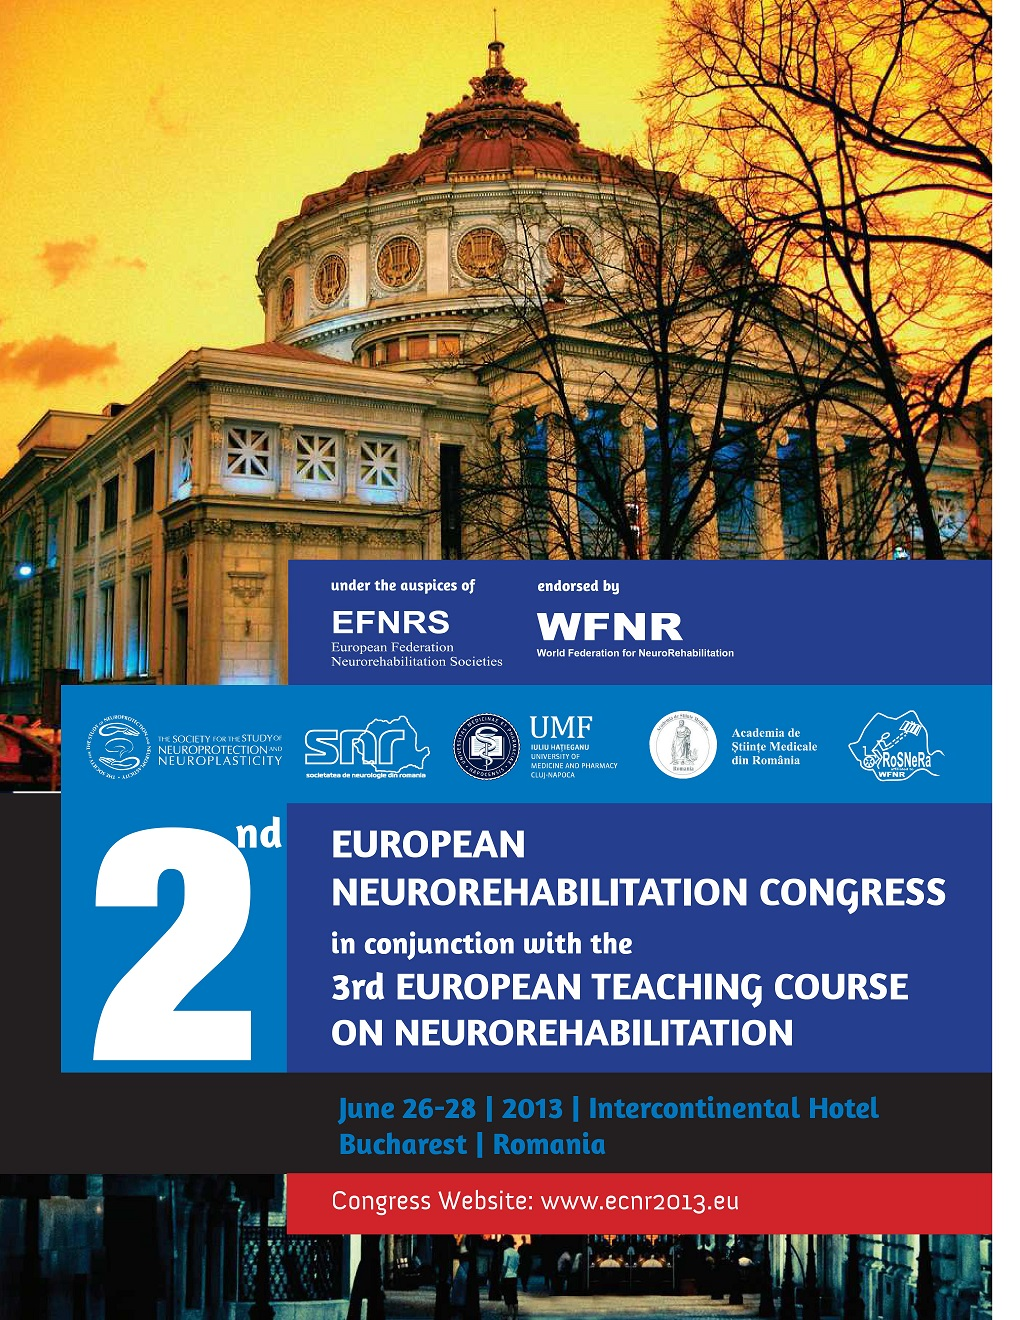 2nd EUROPEAN NEUROREHABILITATION CONGRESS